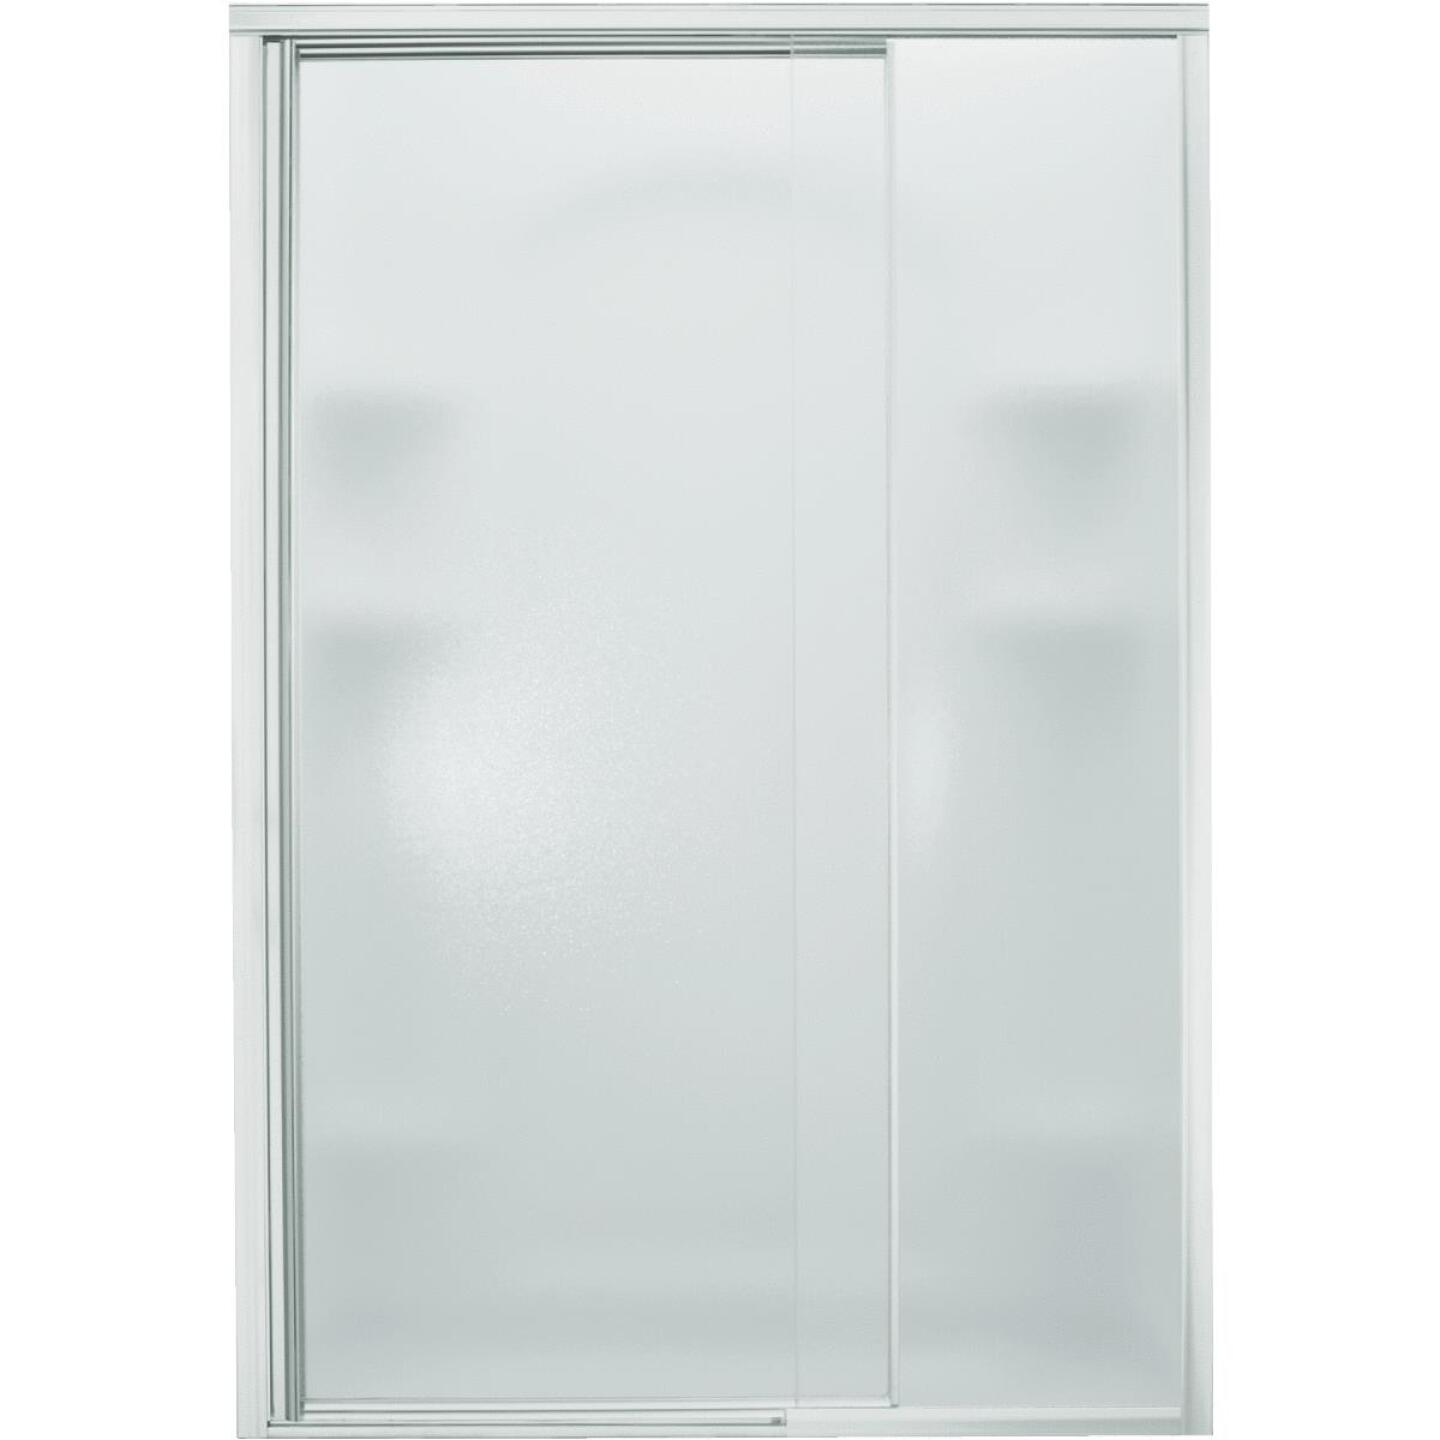 Sterling Vista Pivot II 48 In. W. X 65-1/2 In. H. Chrome Pebbled Glass Shower Door Image 1